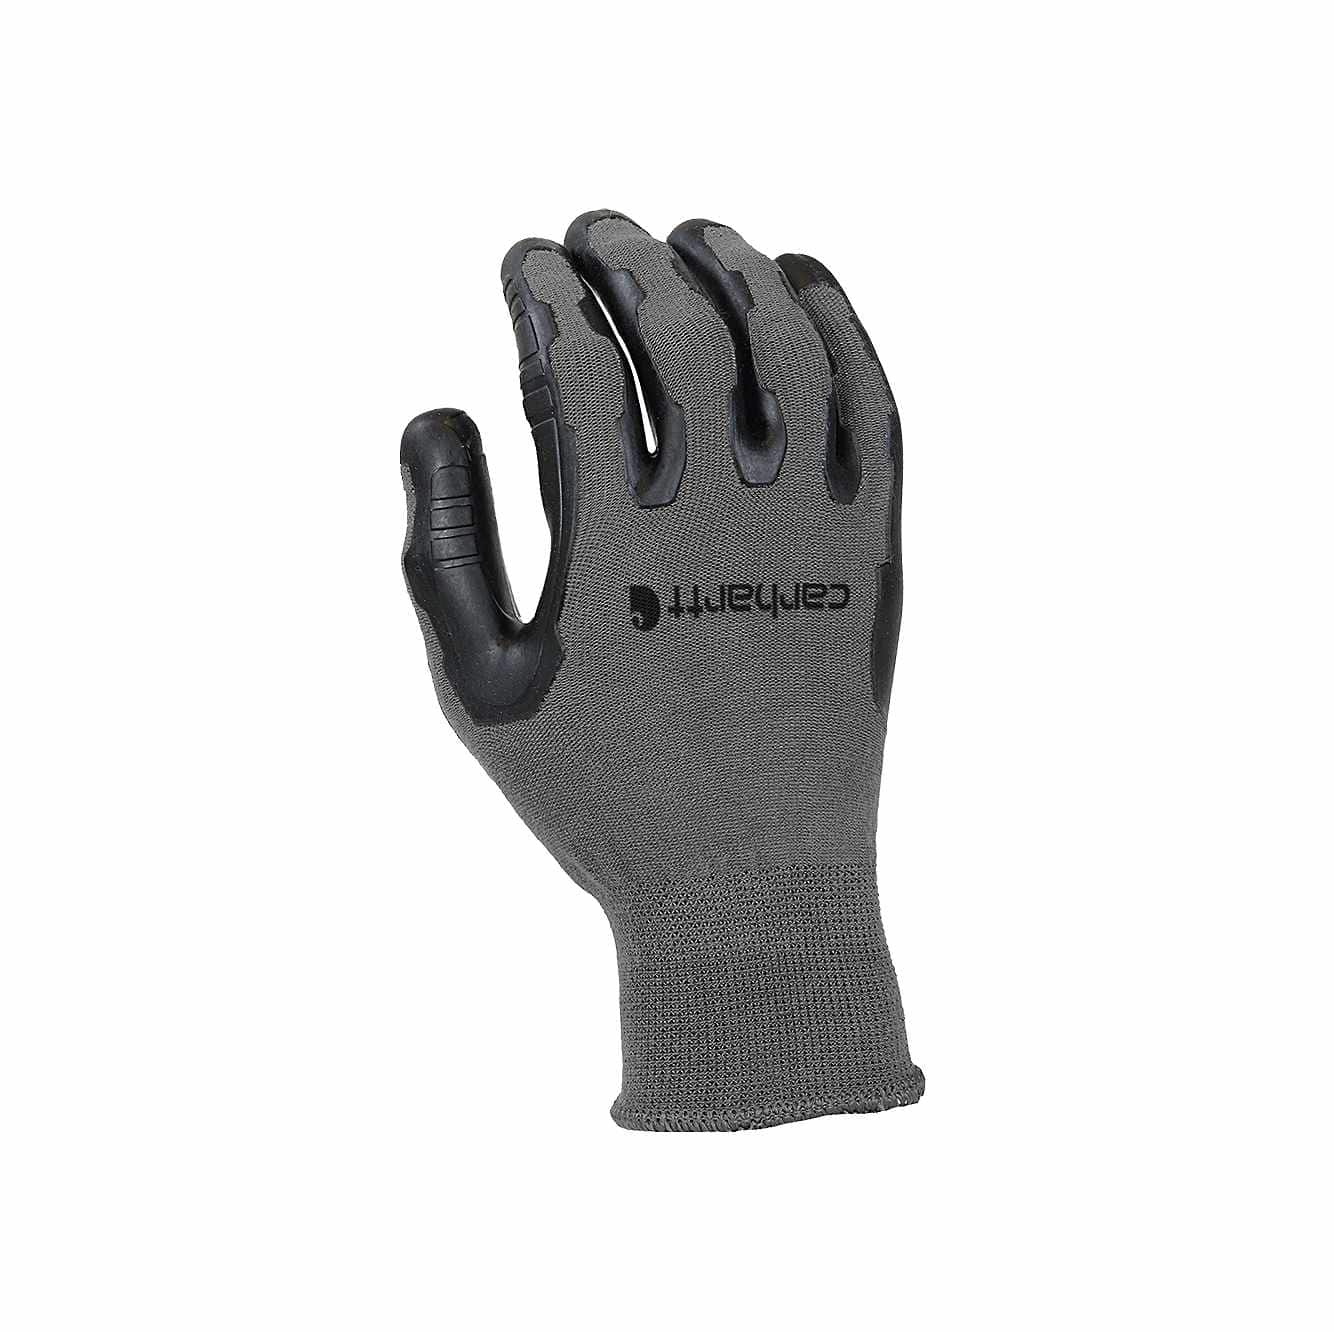 Picture of Pro Palm C-Grip® Glove in Gray